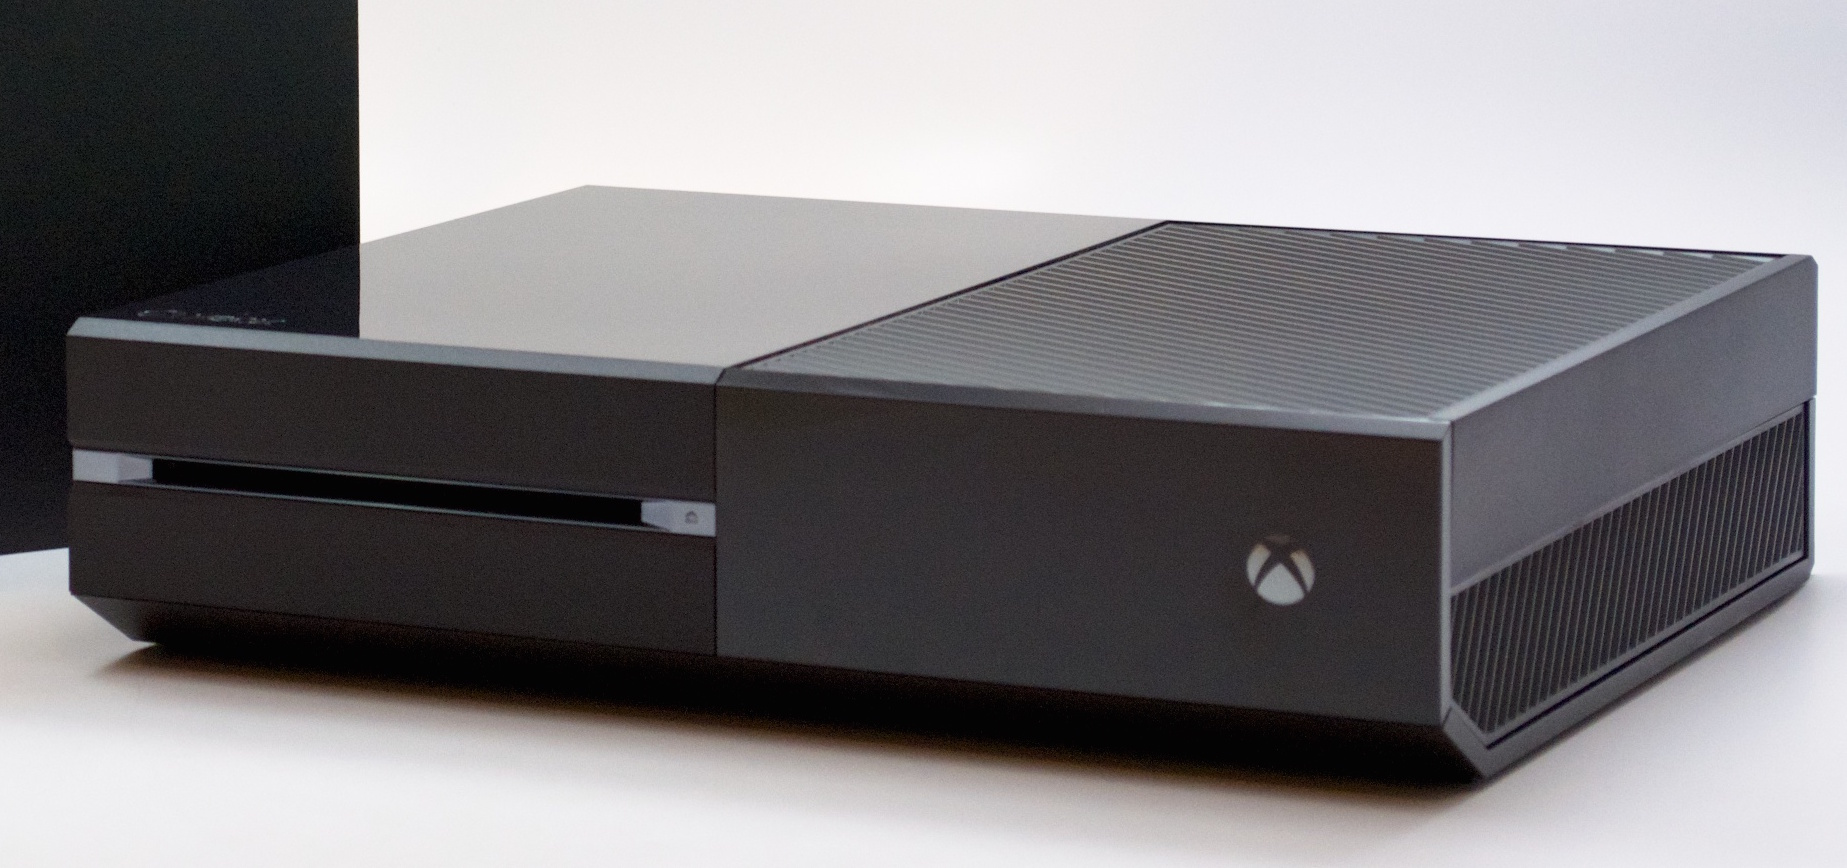 How to Get Free & Cheap Xbox One Games